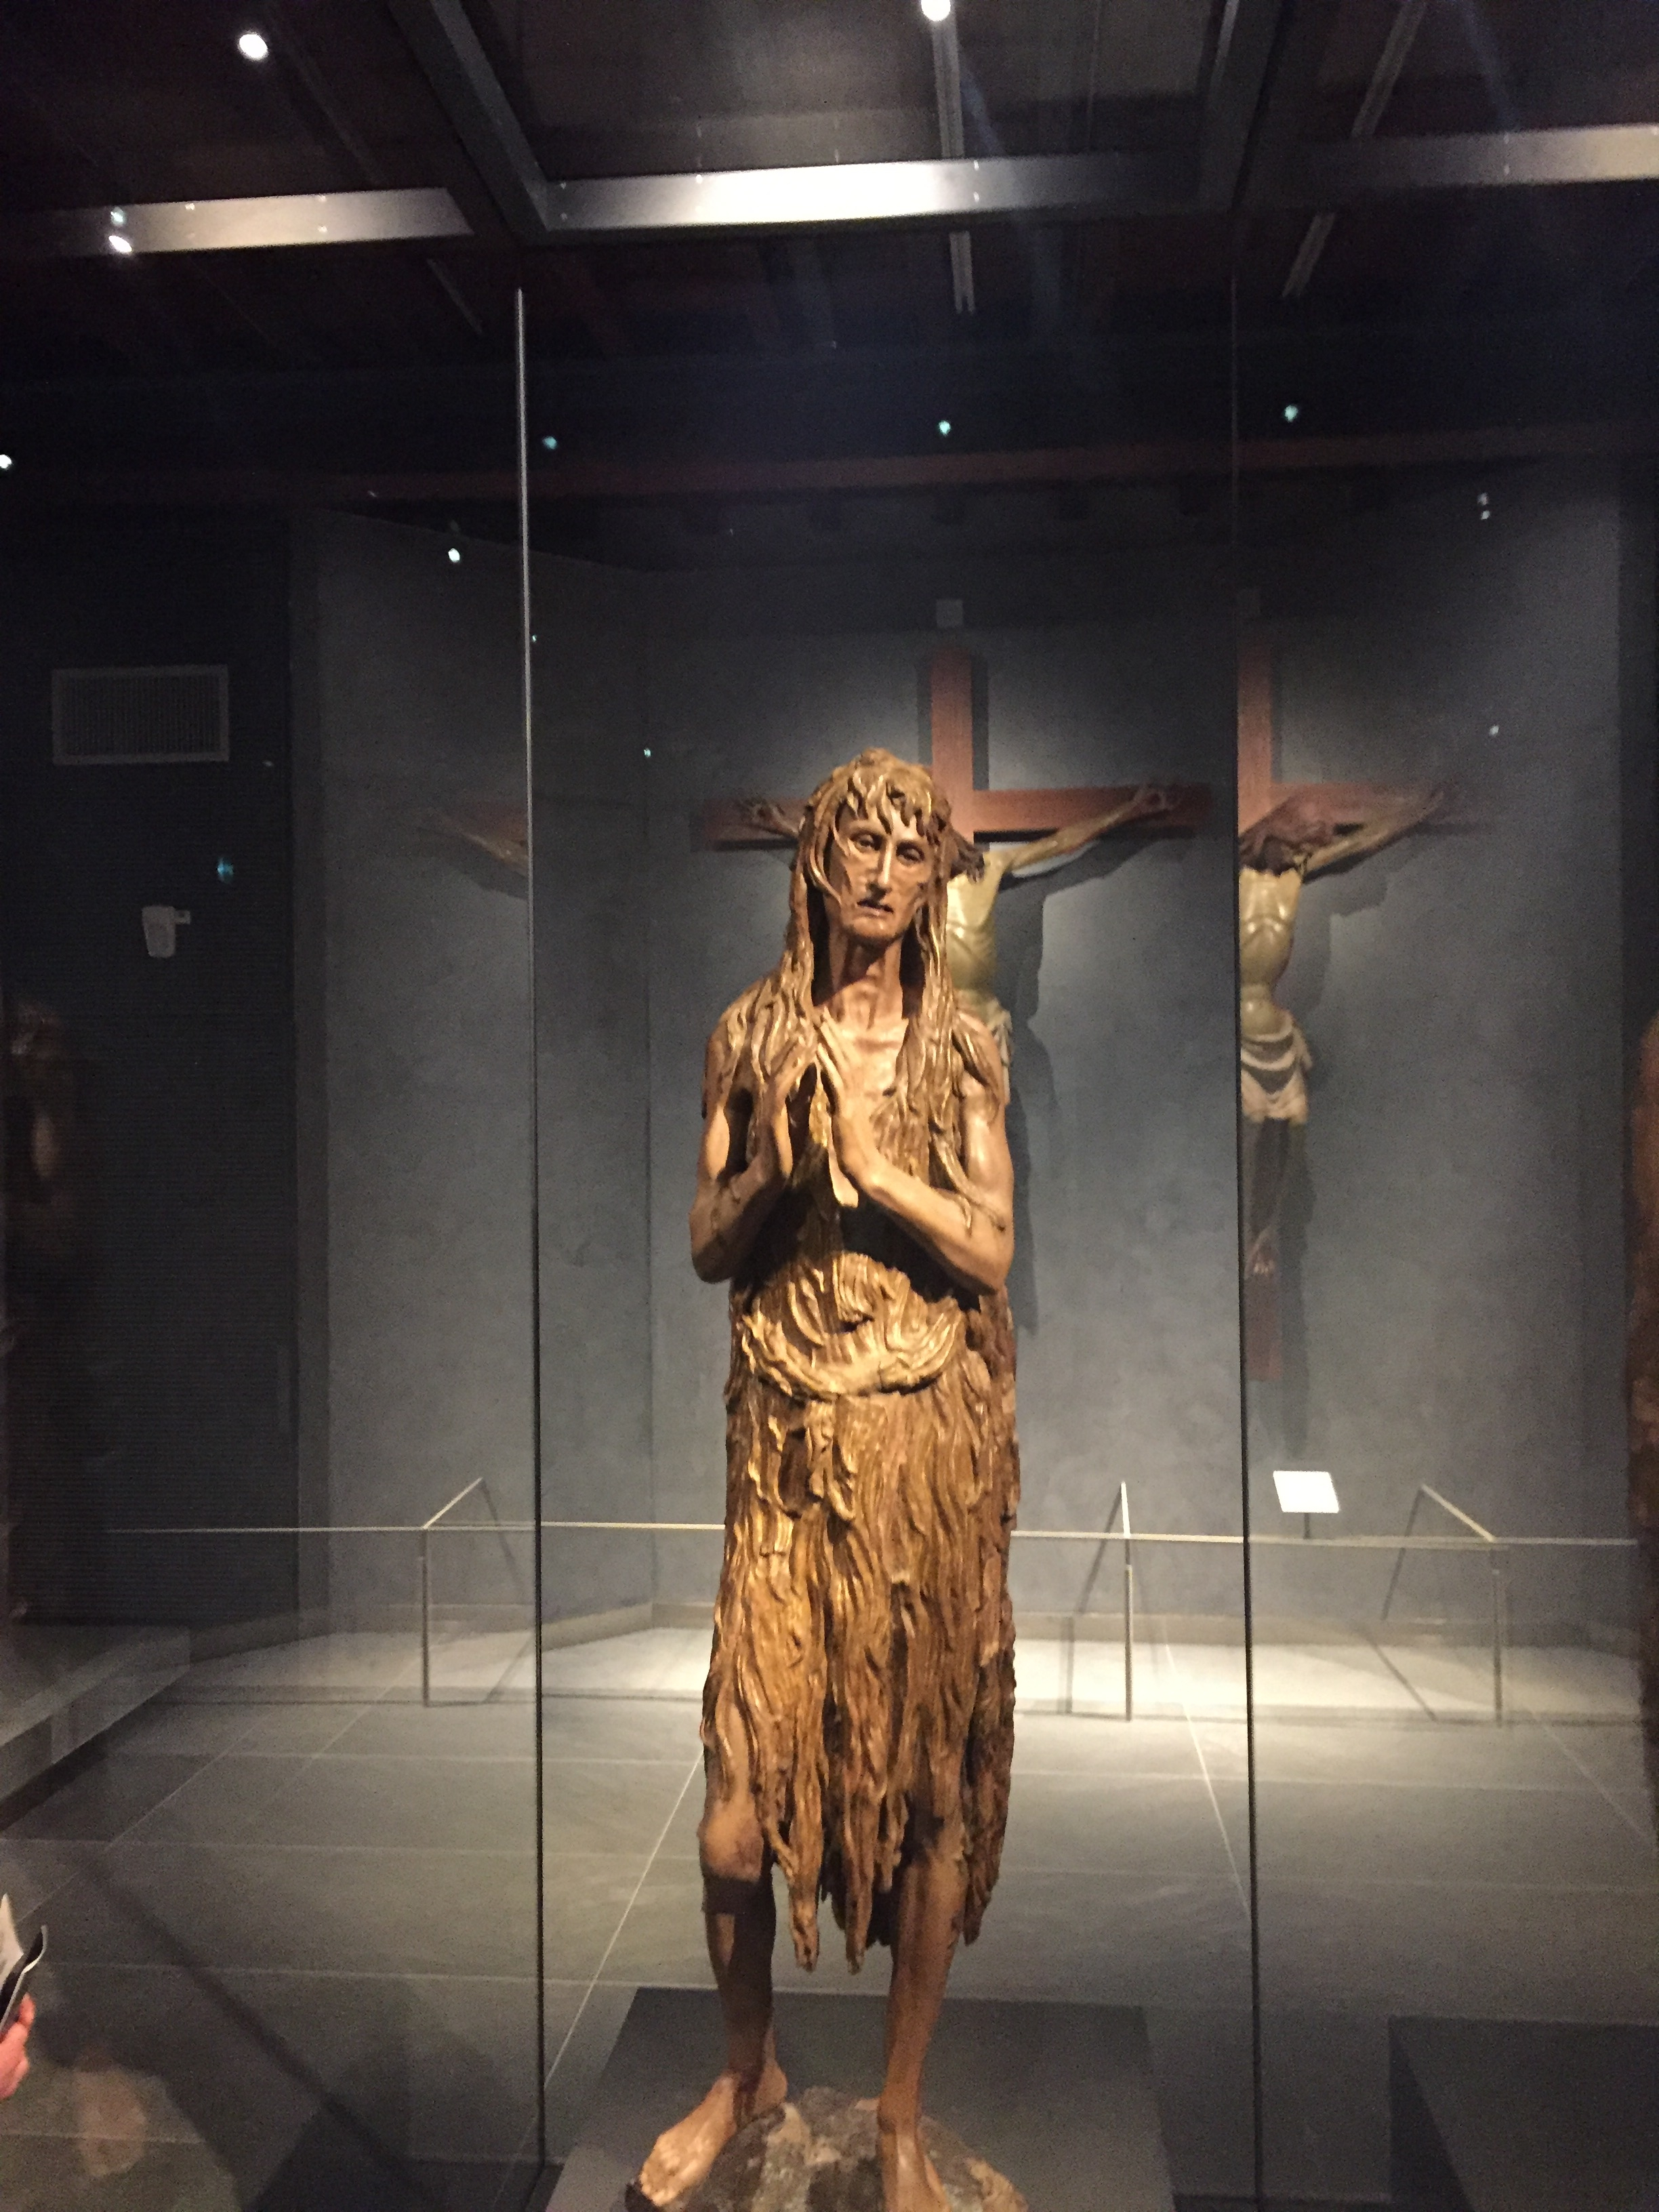 A wood sculpture from 1455 by Donatello known as the Penitent Mary Magdalen is displayed at the Opera Duomo Museum in Florence. Photo credit: M. Ciavardini